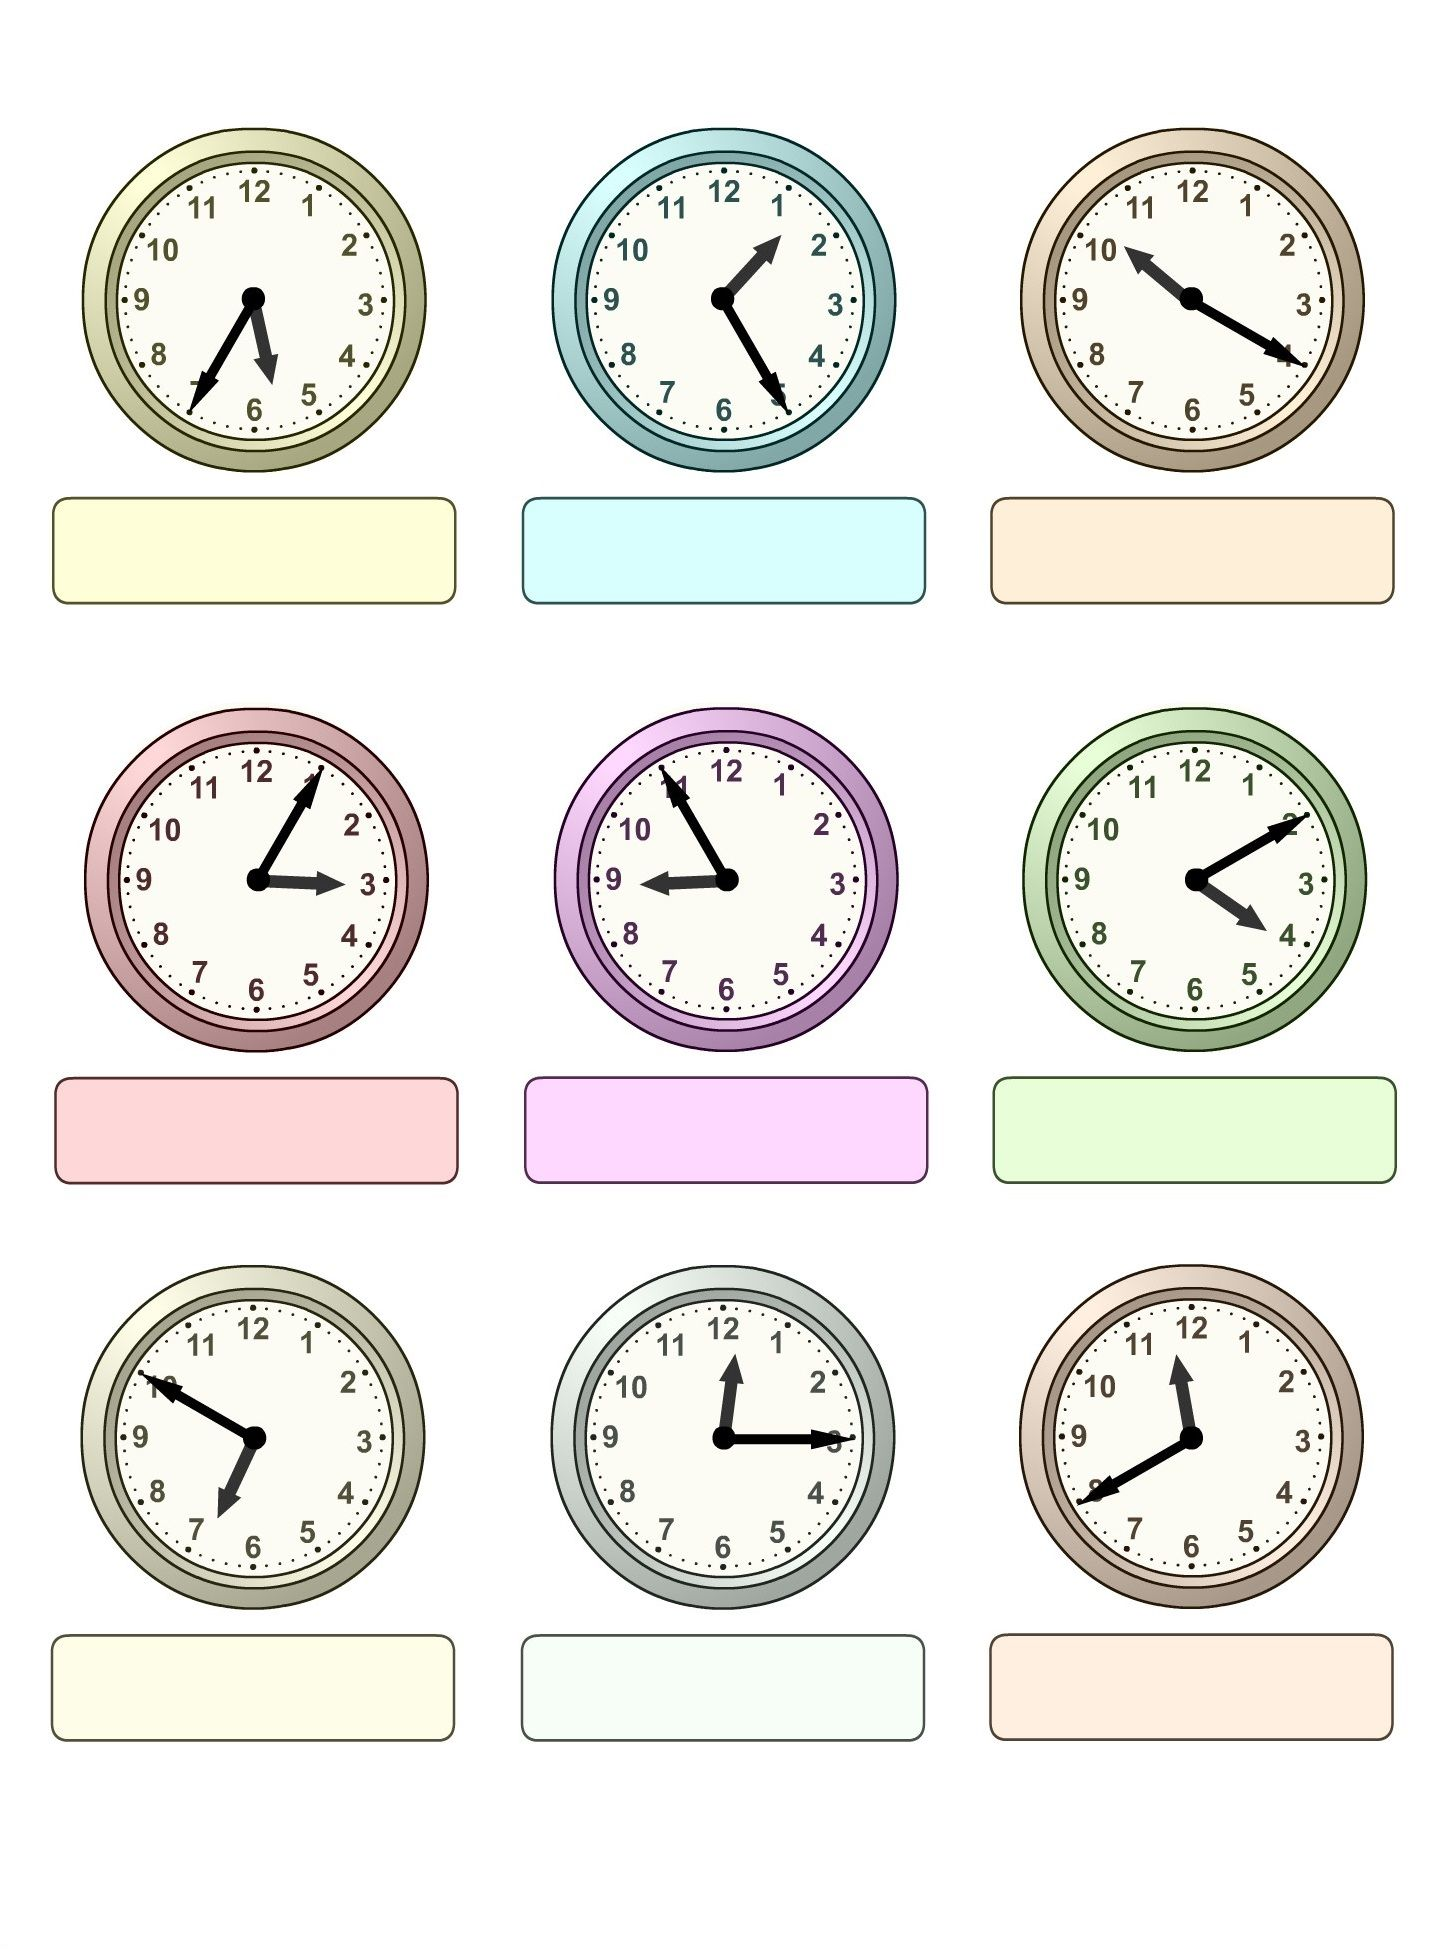 Pin By Ingrid Rottenbiller On Thinglink Time Worksheets Worksheets For Kids Kids Worksheets Printables